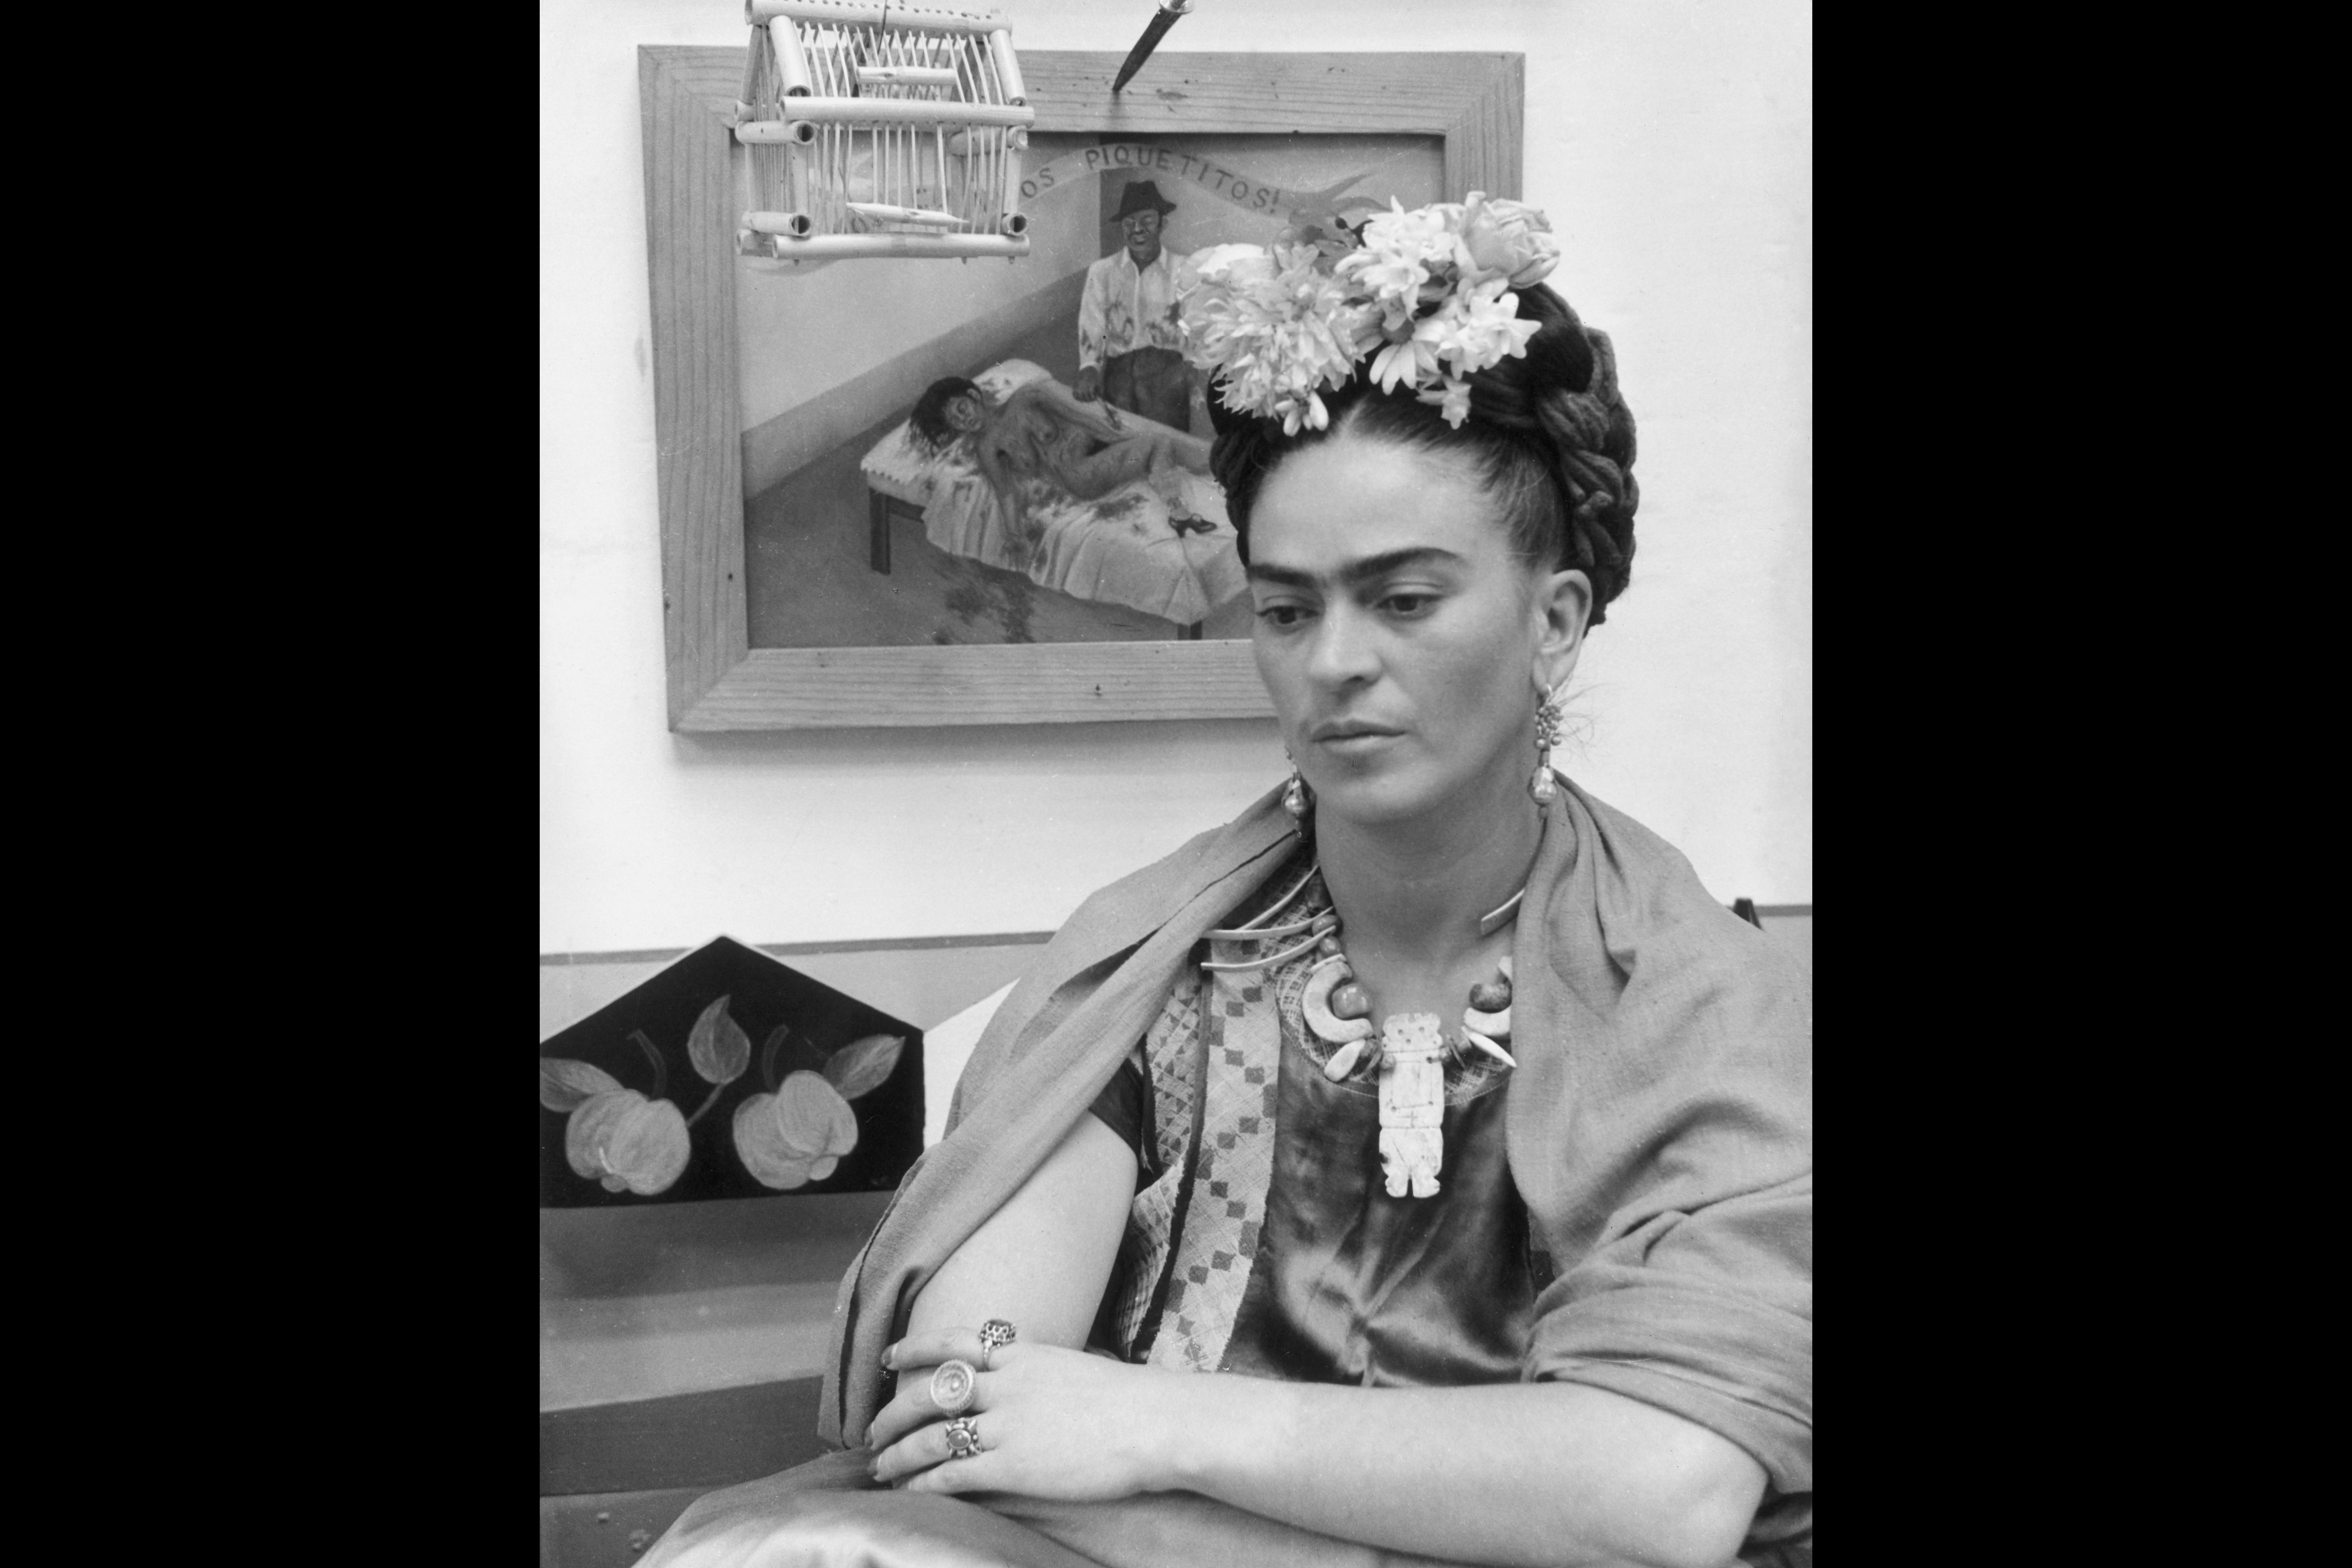 Mexican painter Frida Kahlo sits with her arms folded, looking down, in front of one of her paintings and a wooden bird cage.